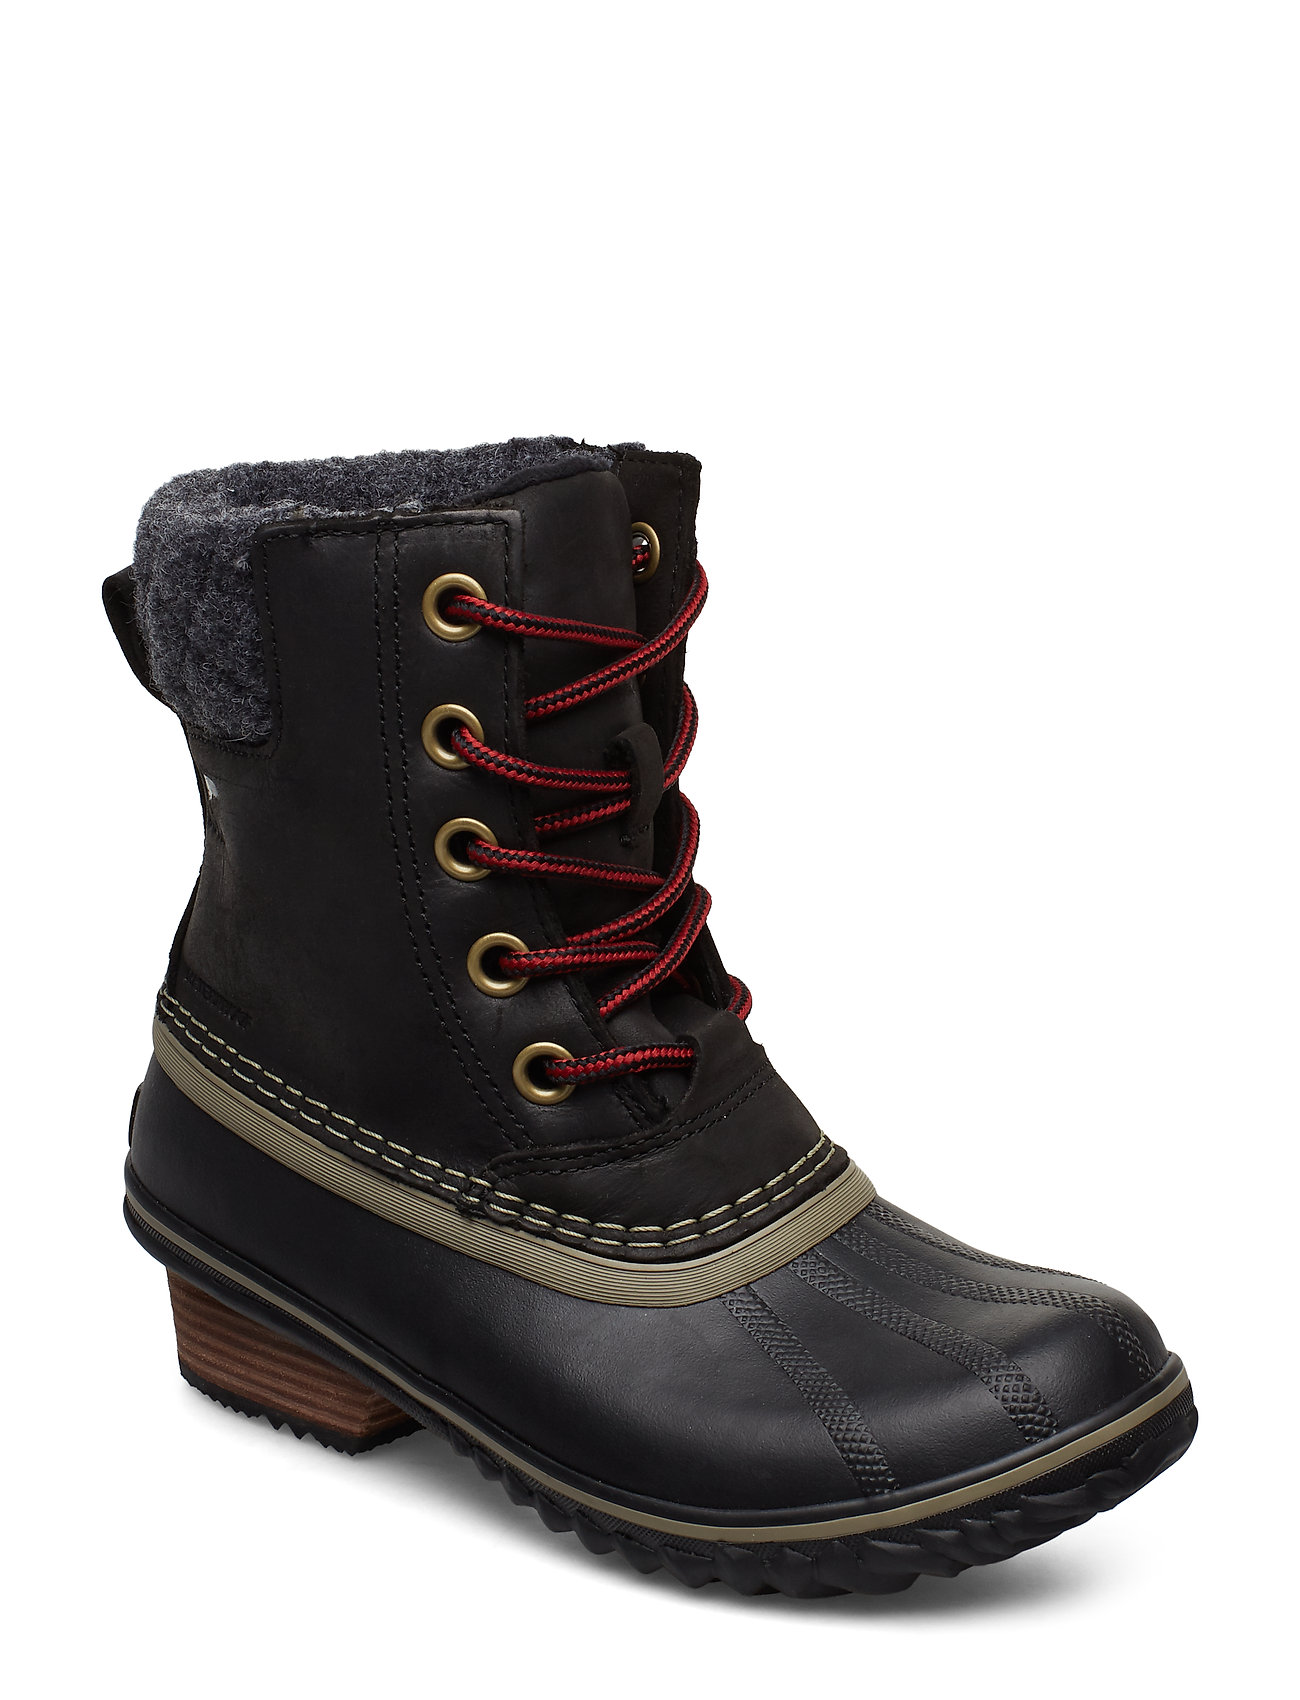 Image of Slimpack Lace Ii Felt Shoes Boots Ankle Boots Ankle Boot - Flat Sort Sorel (3216262539)